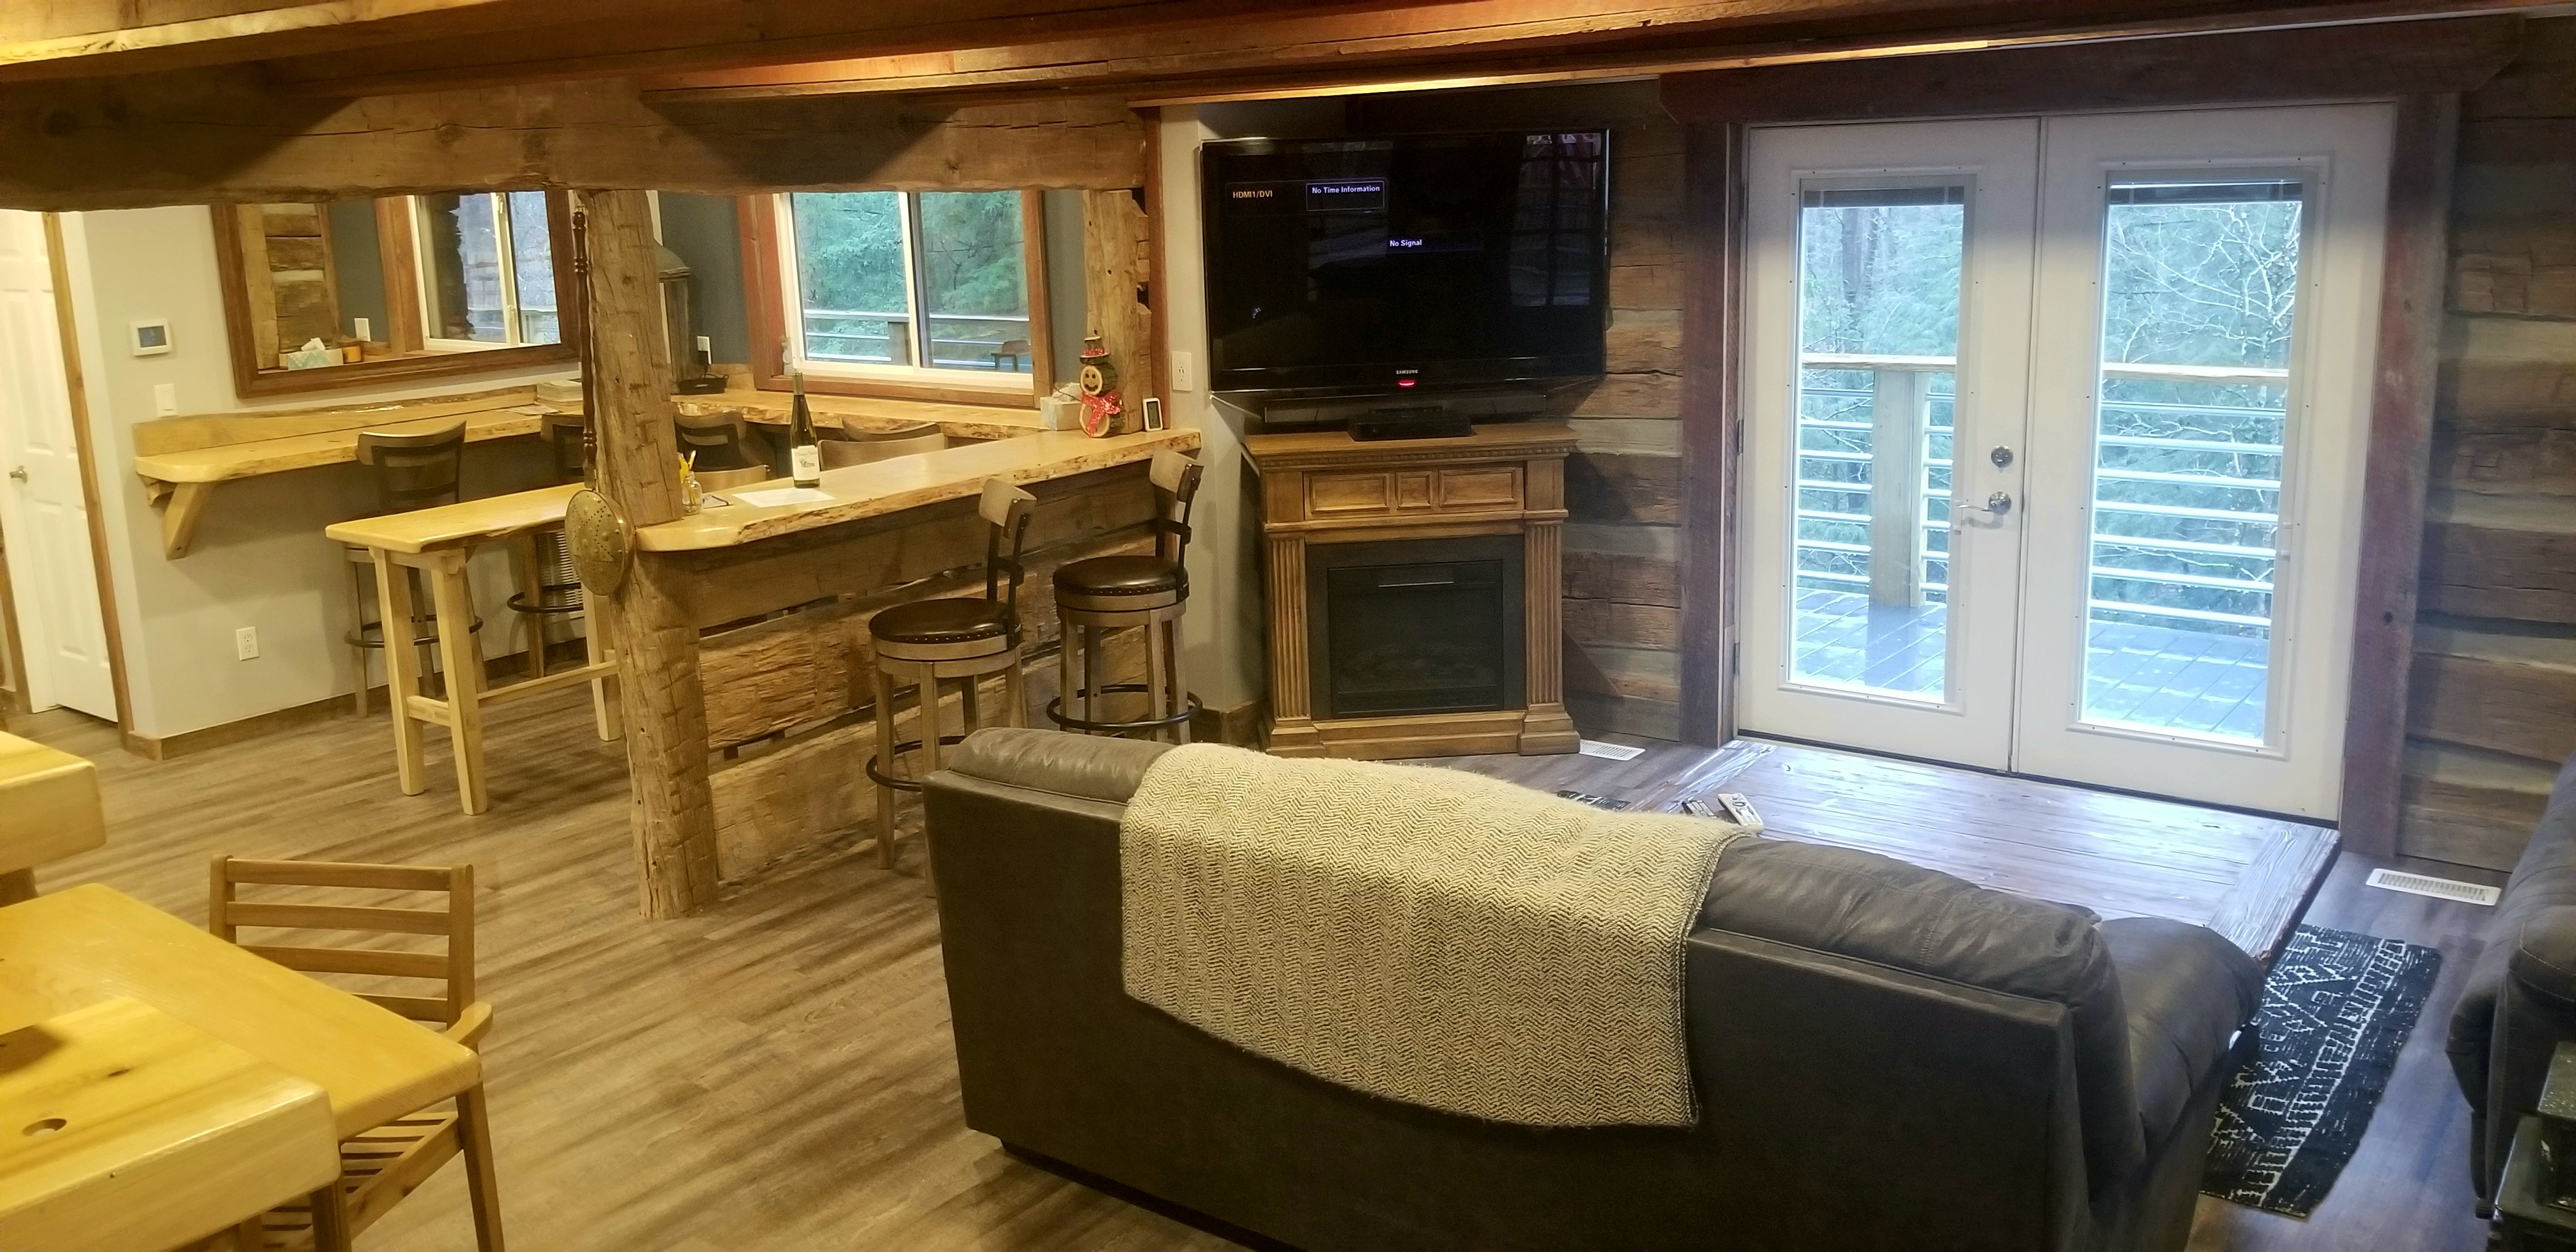 Cliffside Properties Carter Caves Cabin Rental Cabins For Rent In Olive Hill Kentucky United States